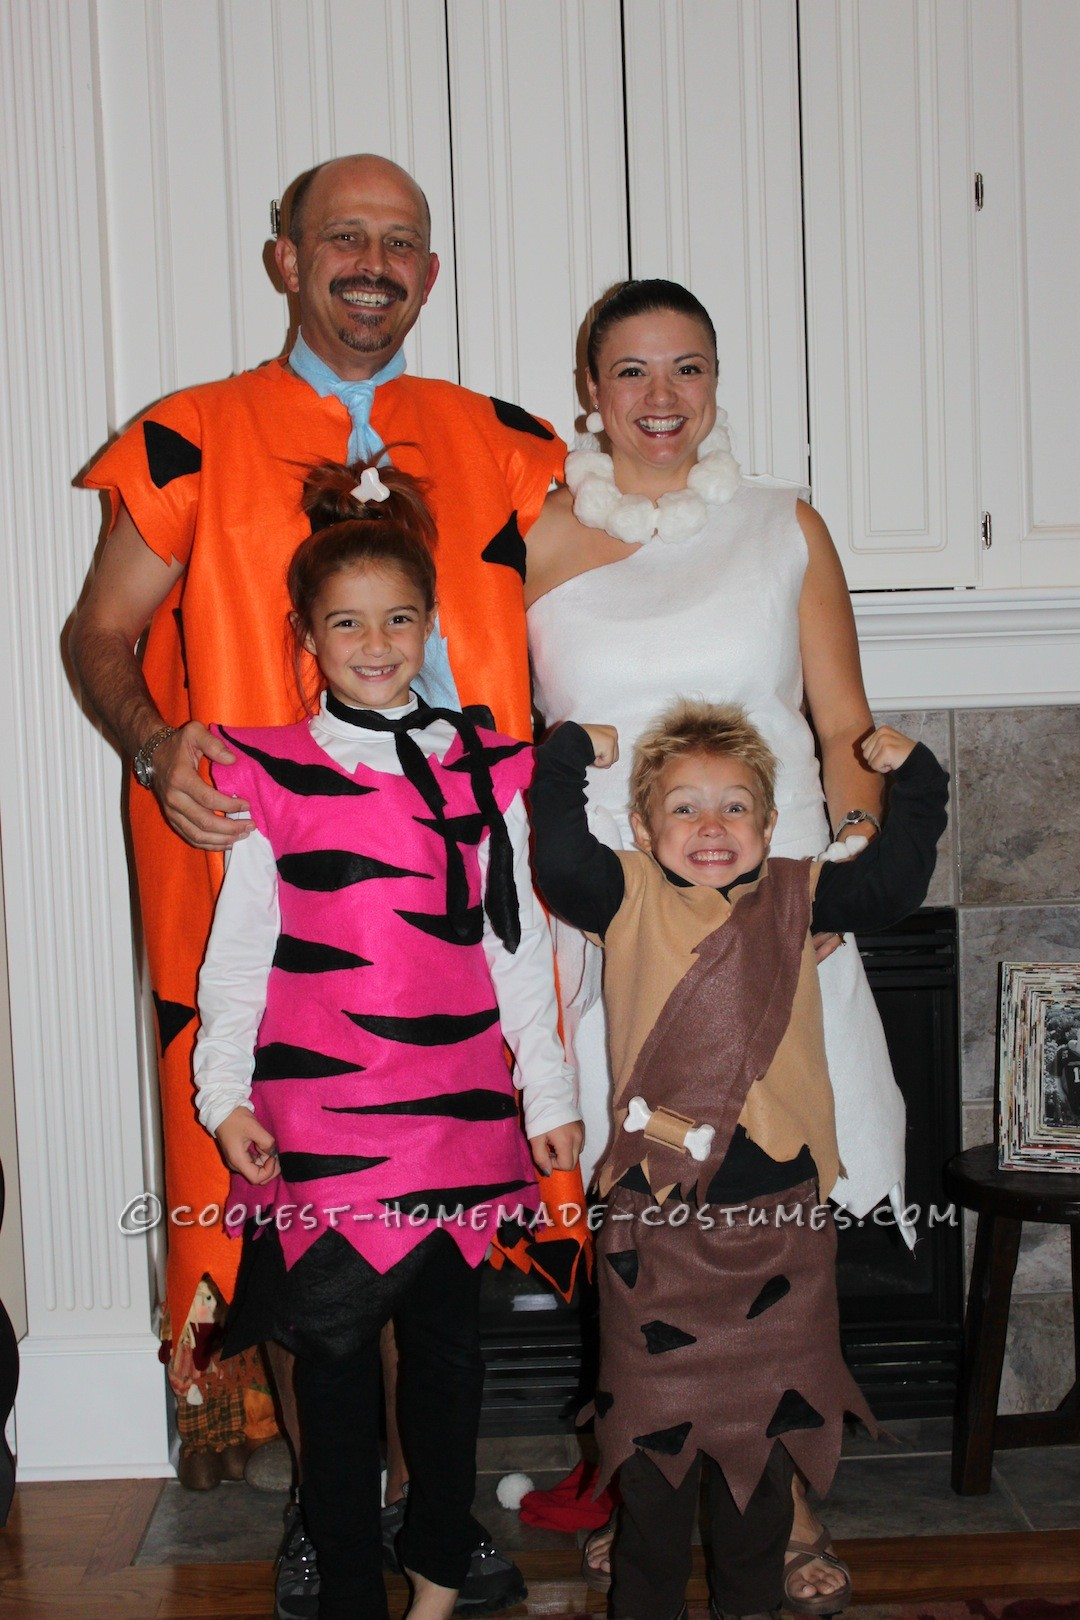 Fun Homemade Group Costume for the Family: The Flintstone's